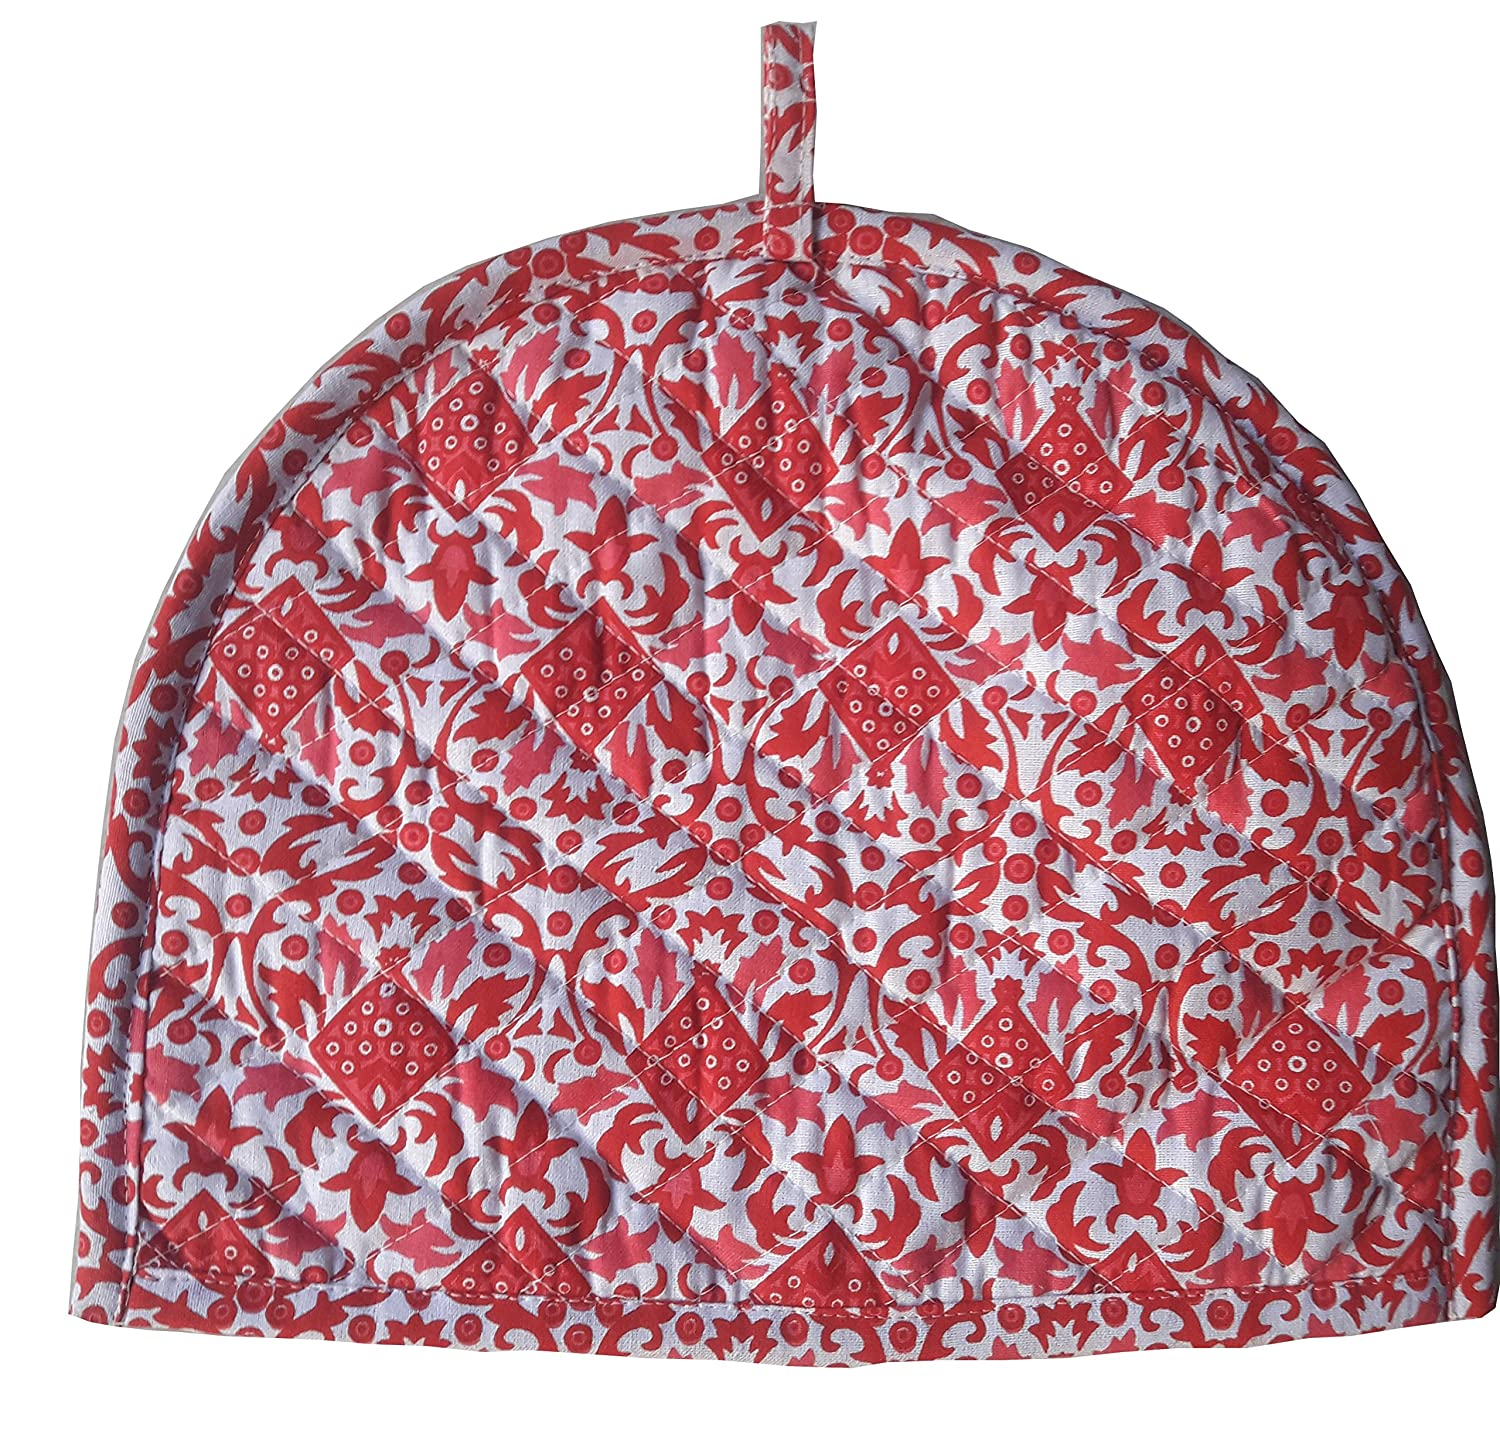 Red Tea Cosy Cotton kitchen accessories Red Color royal Tea Cozy Cover Red kettle Tea Pot cover Marudhara Fashion TEA00013